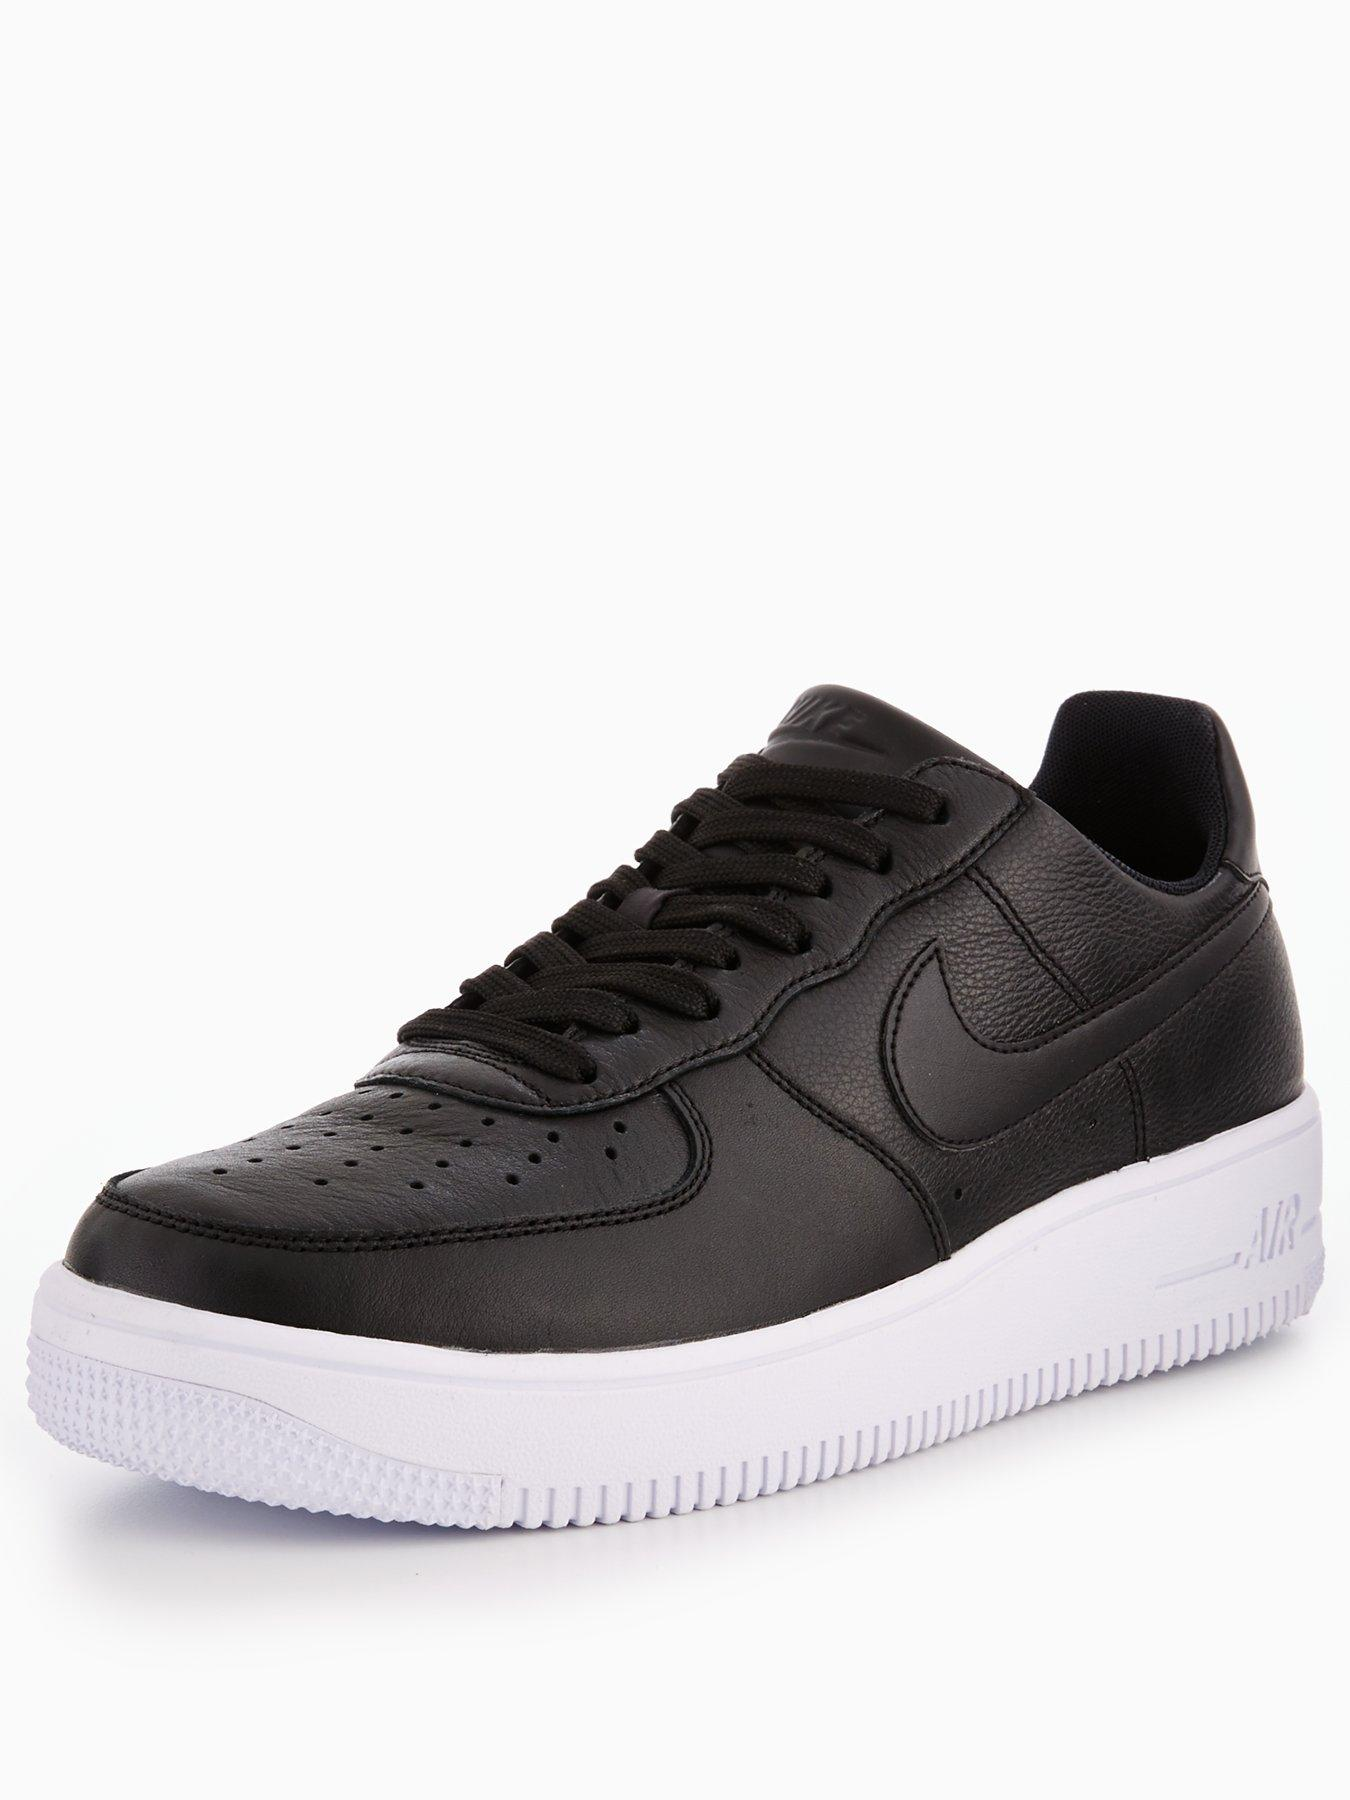 Nike Air Force 1 Ultraforce Leather 1600181894 Men's Shoes Nike Trainers